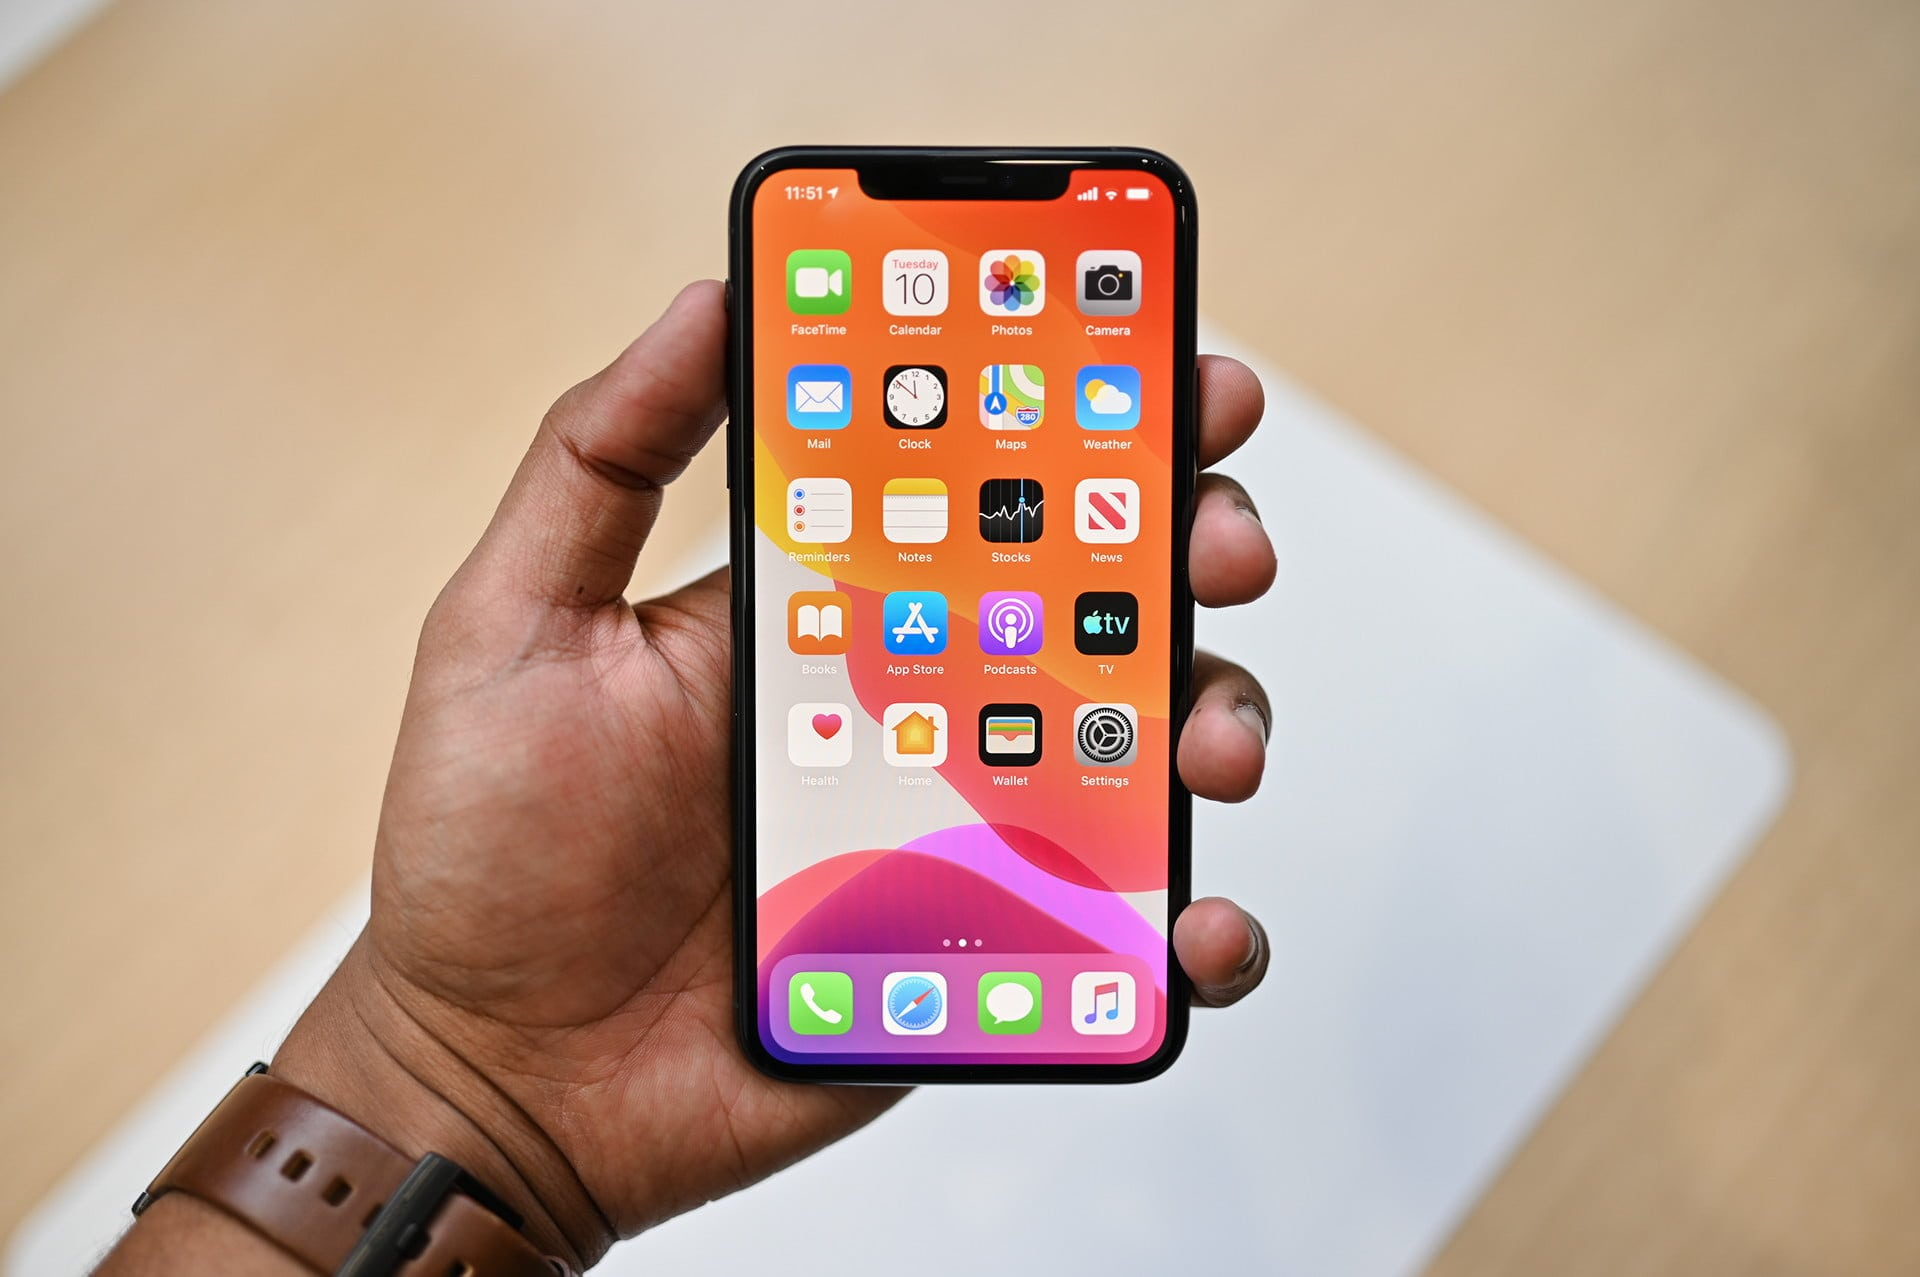 5. iPhone 11 Pro Max – Best for Hardware and Battery Performance